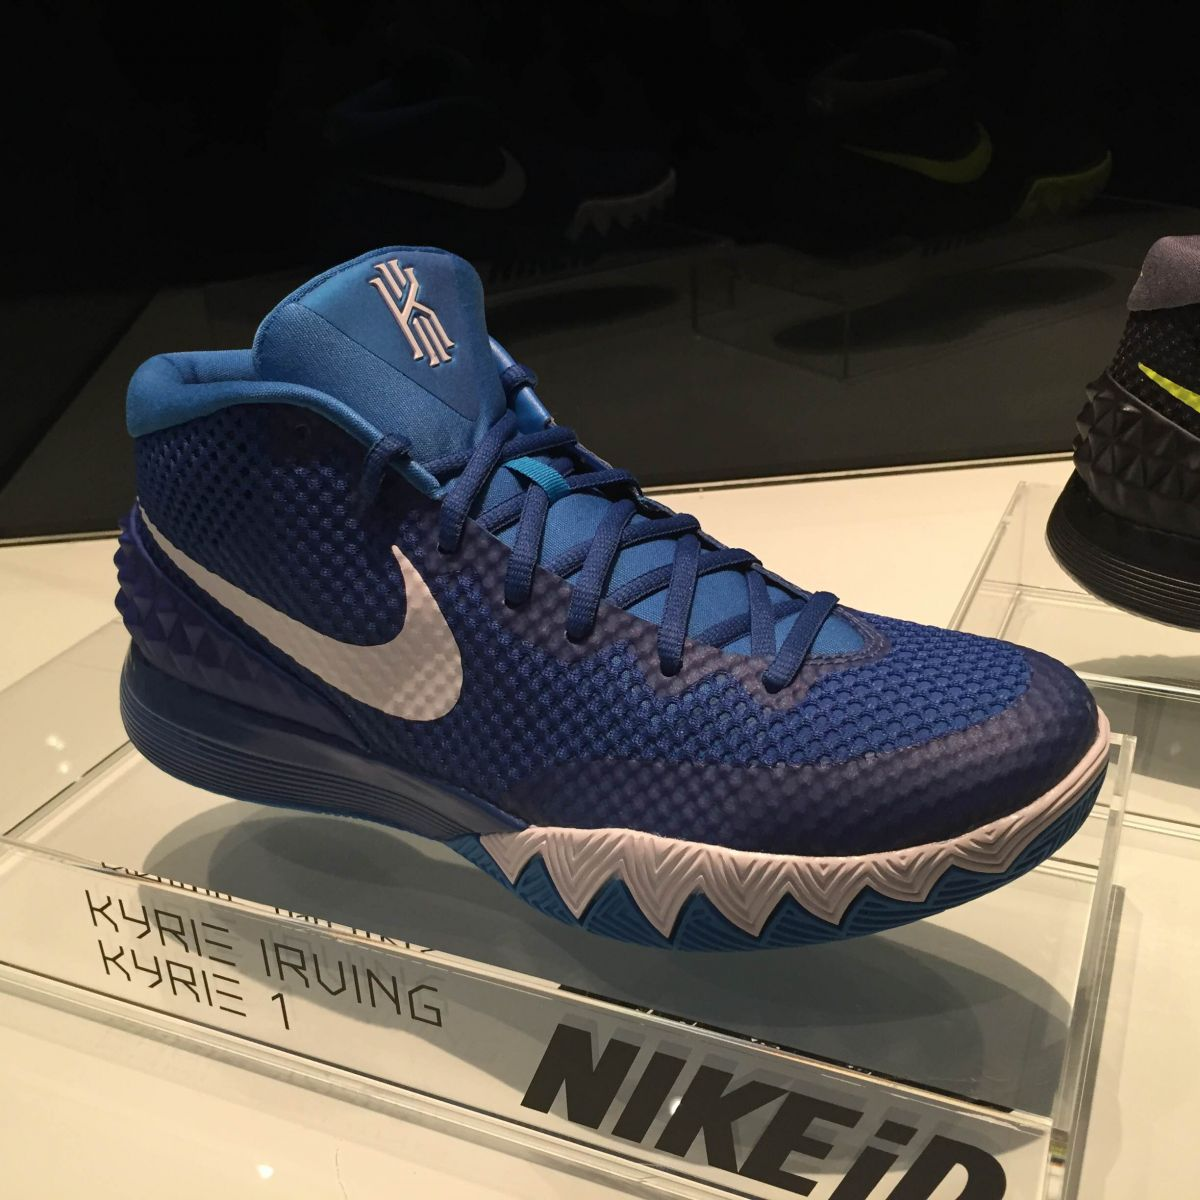 blue and black barkleys kyrie irving sneakers